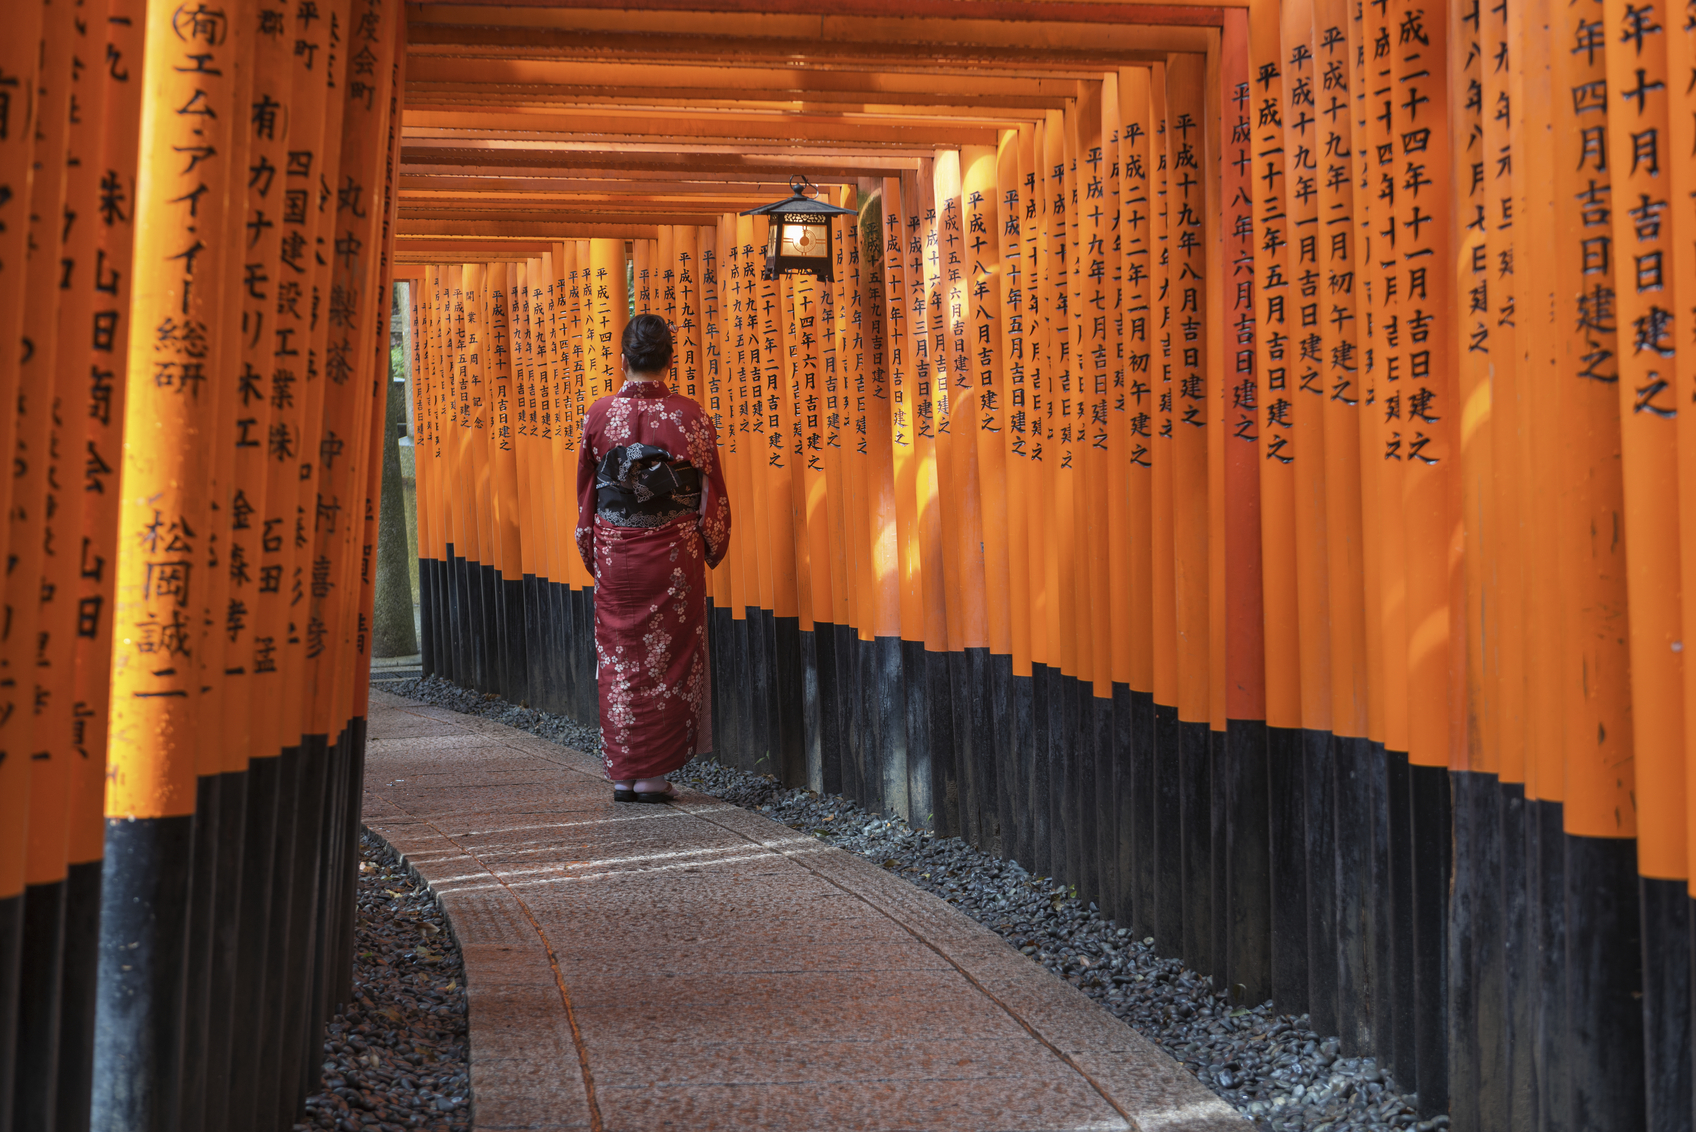 Kyoto, Japan - February 6, 2013: Women in kimono stand alone at Red Torii gates in Fushimi Inari shrine, one of famous landmarks in Kyoto, Japan